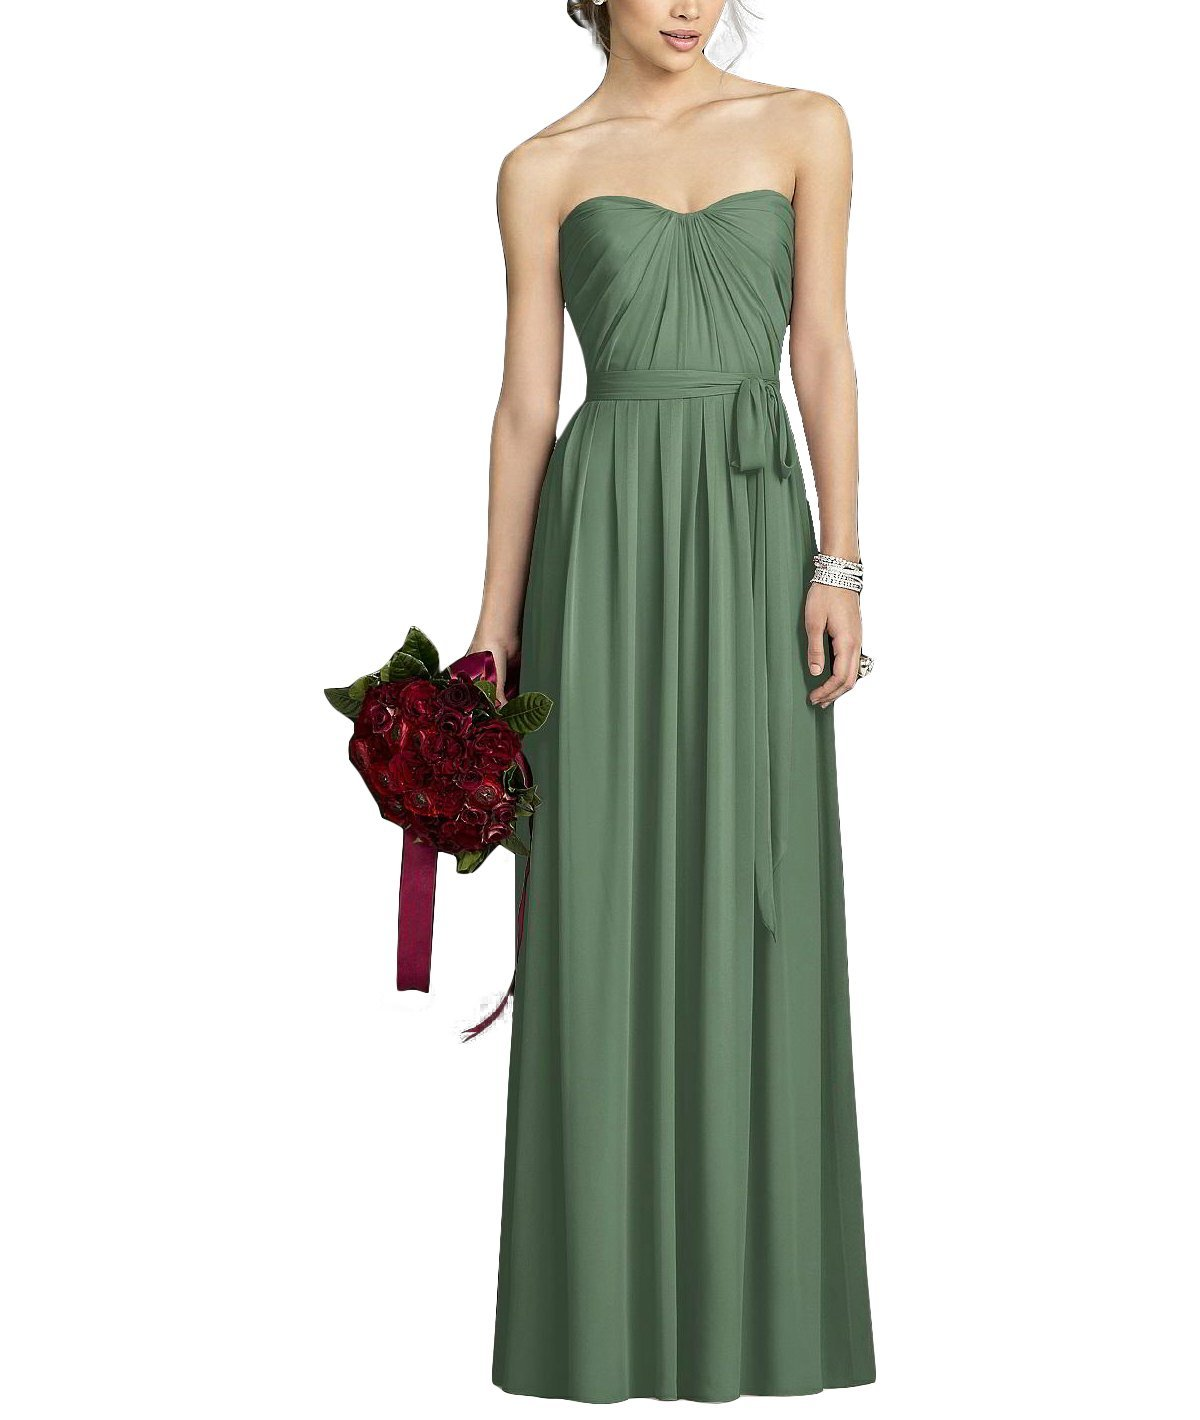 Bridesmaid Dresses, Bridesmaid